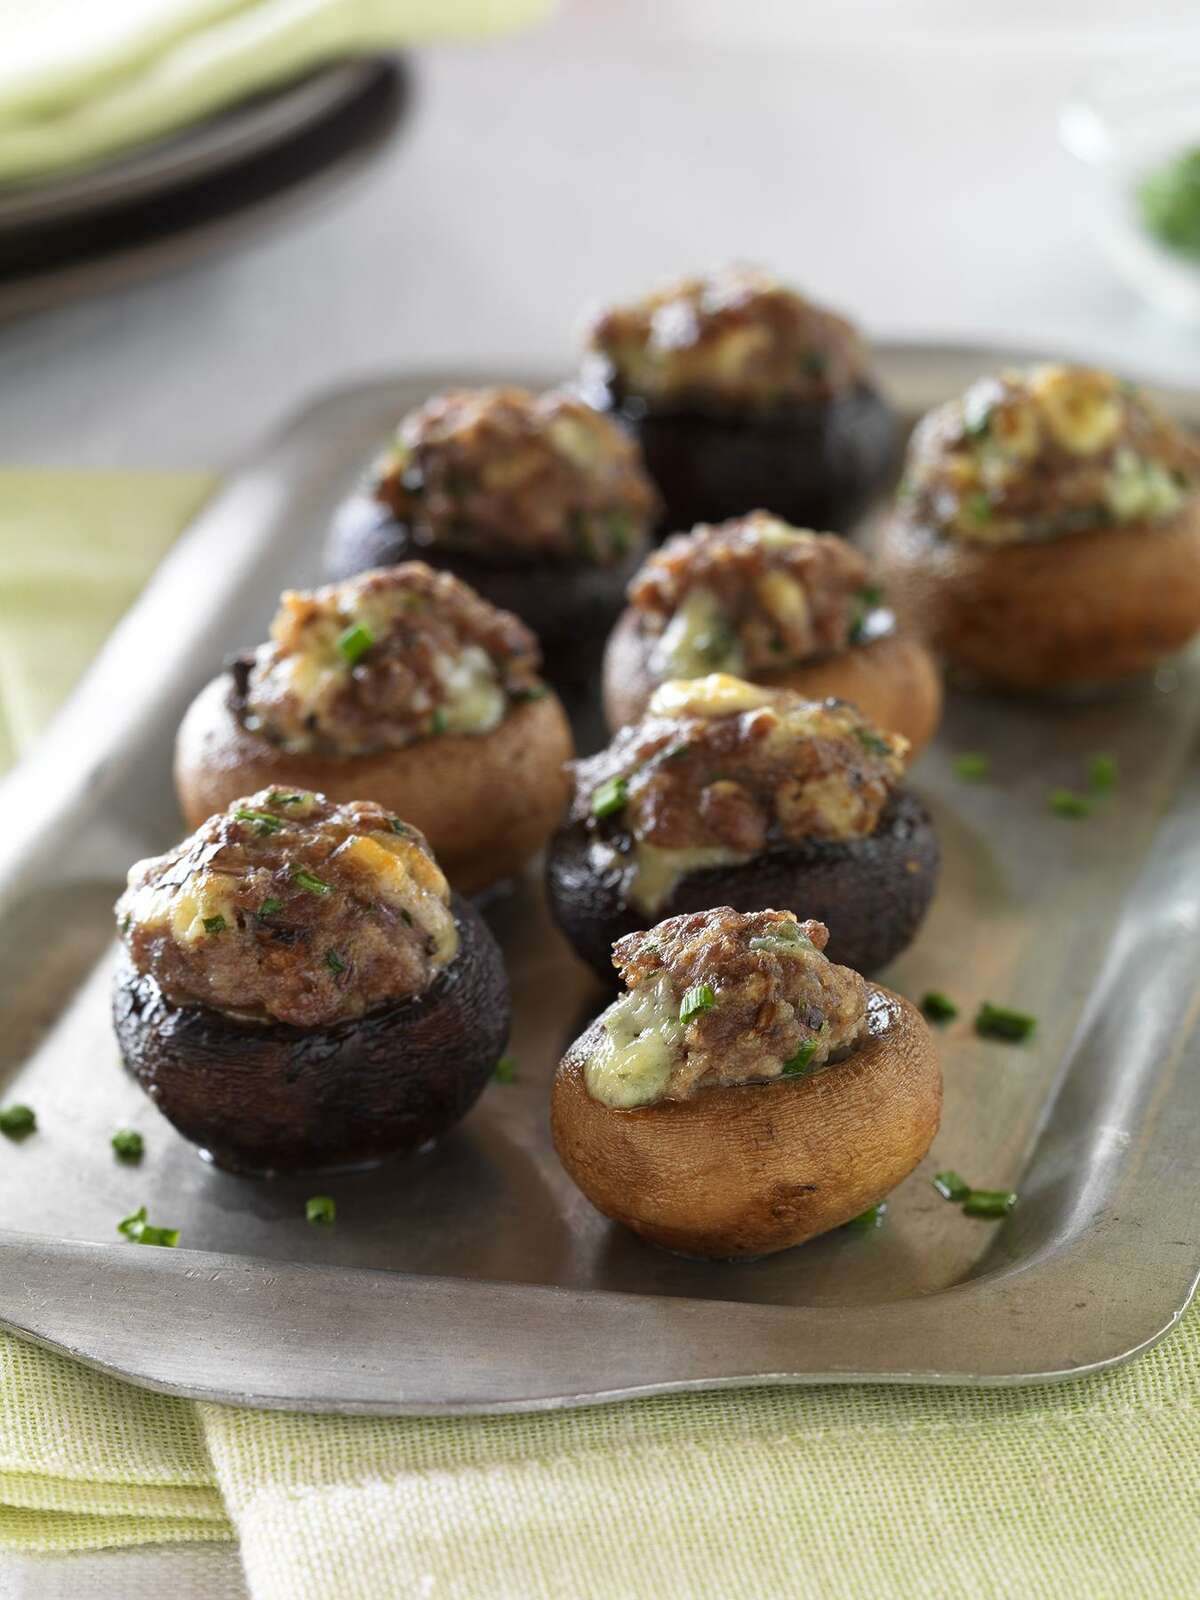 Beef and blue cheese stuffed mushrooms make a good appetizer and Super Bowl party dish